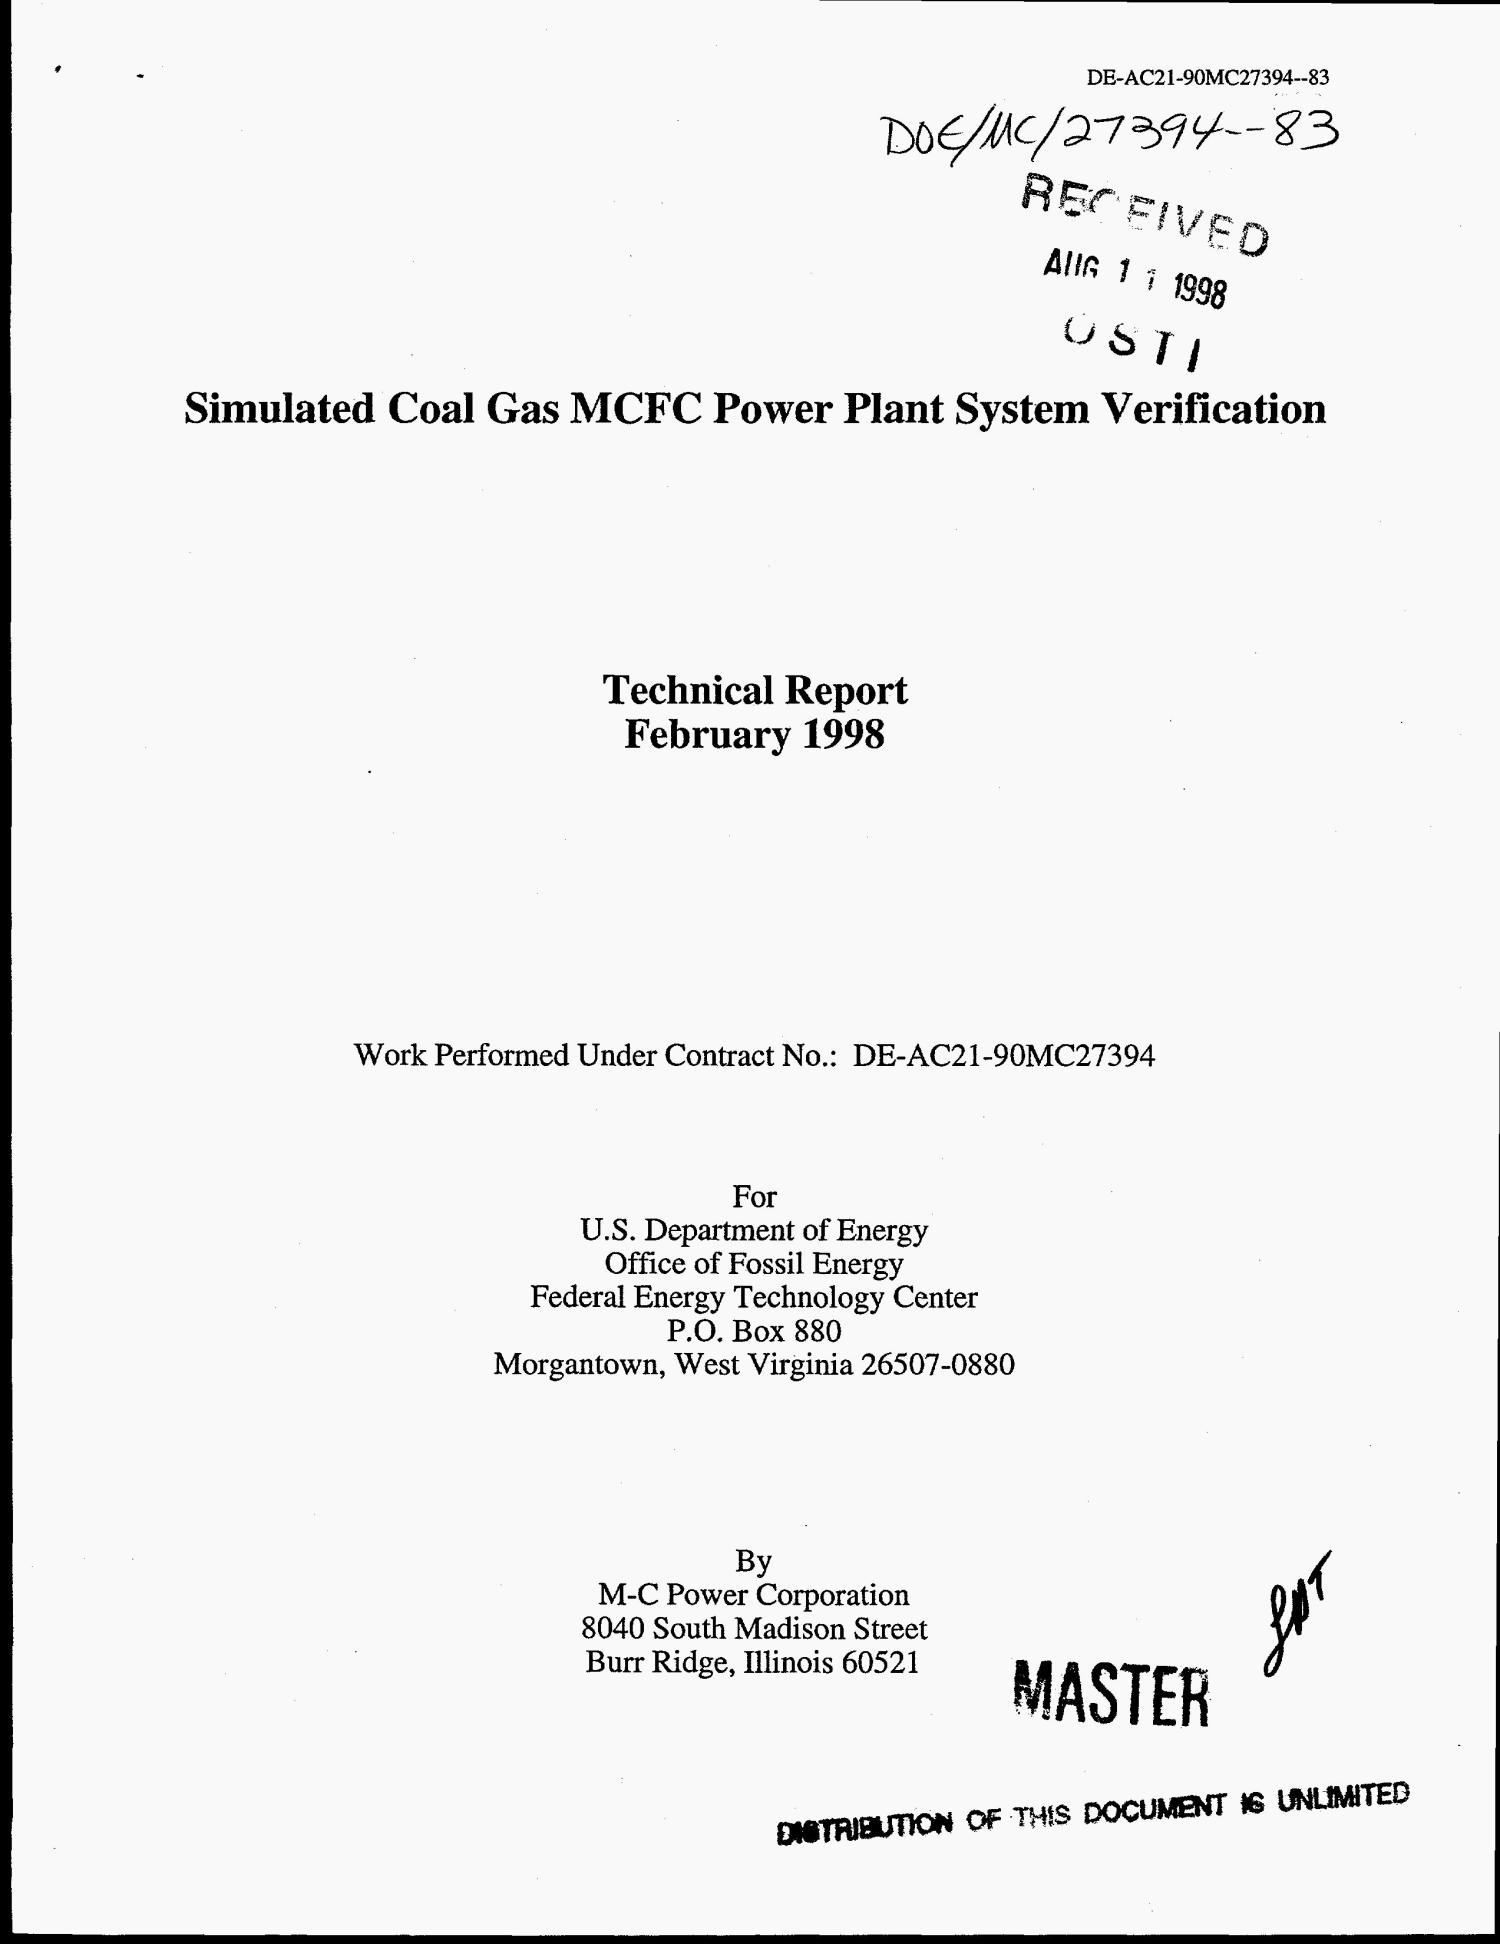 Simulated coal gas MCFC power plant system verification                                                                                                      [Sequence #]: 1 of 6